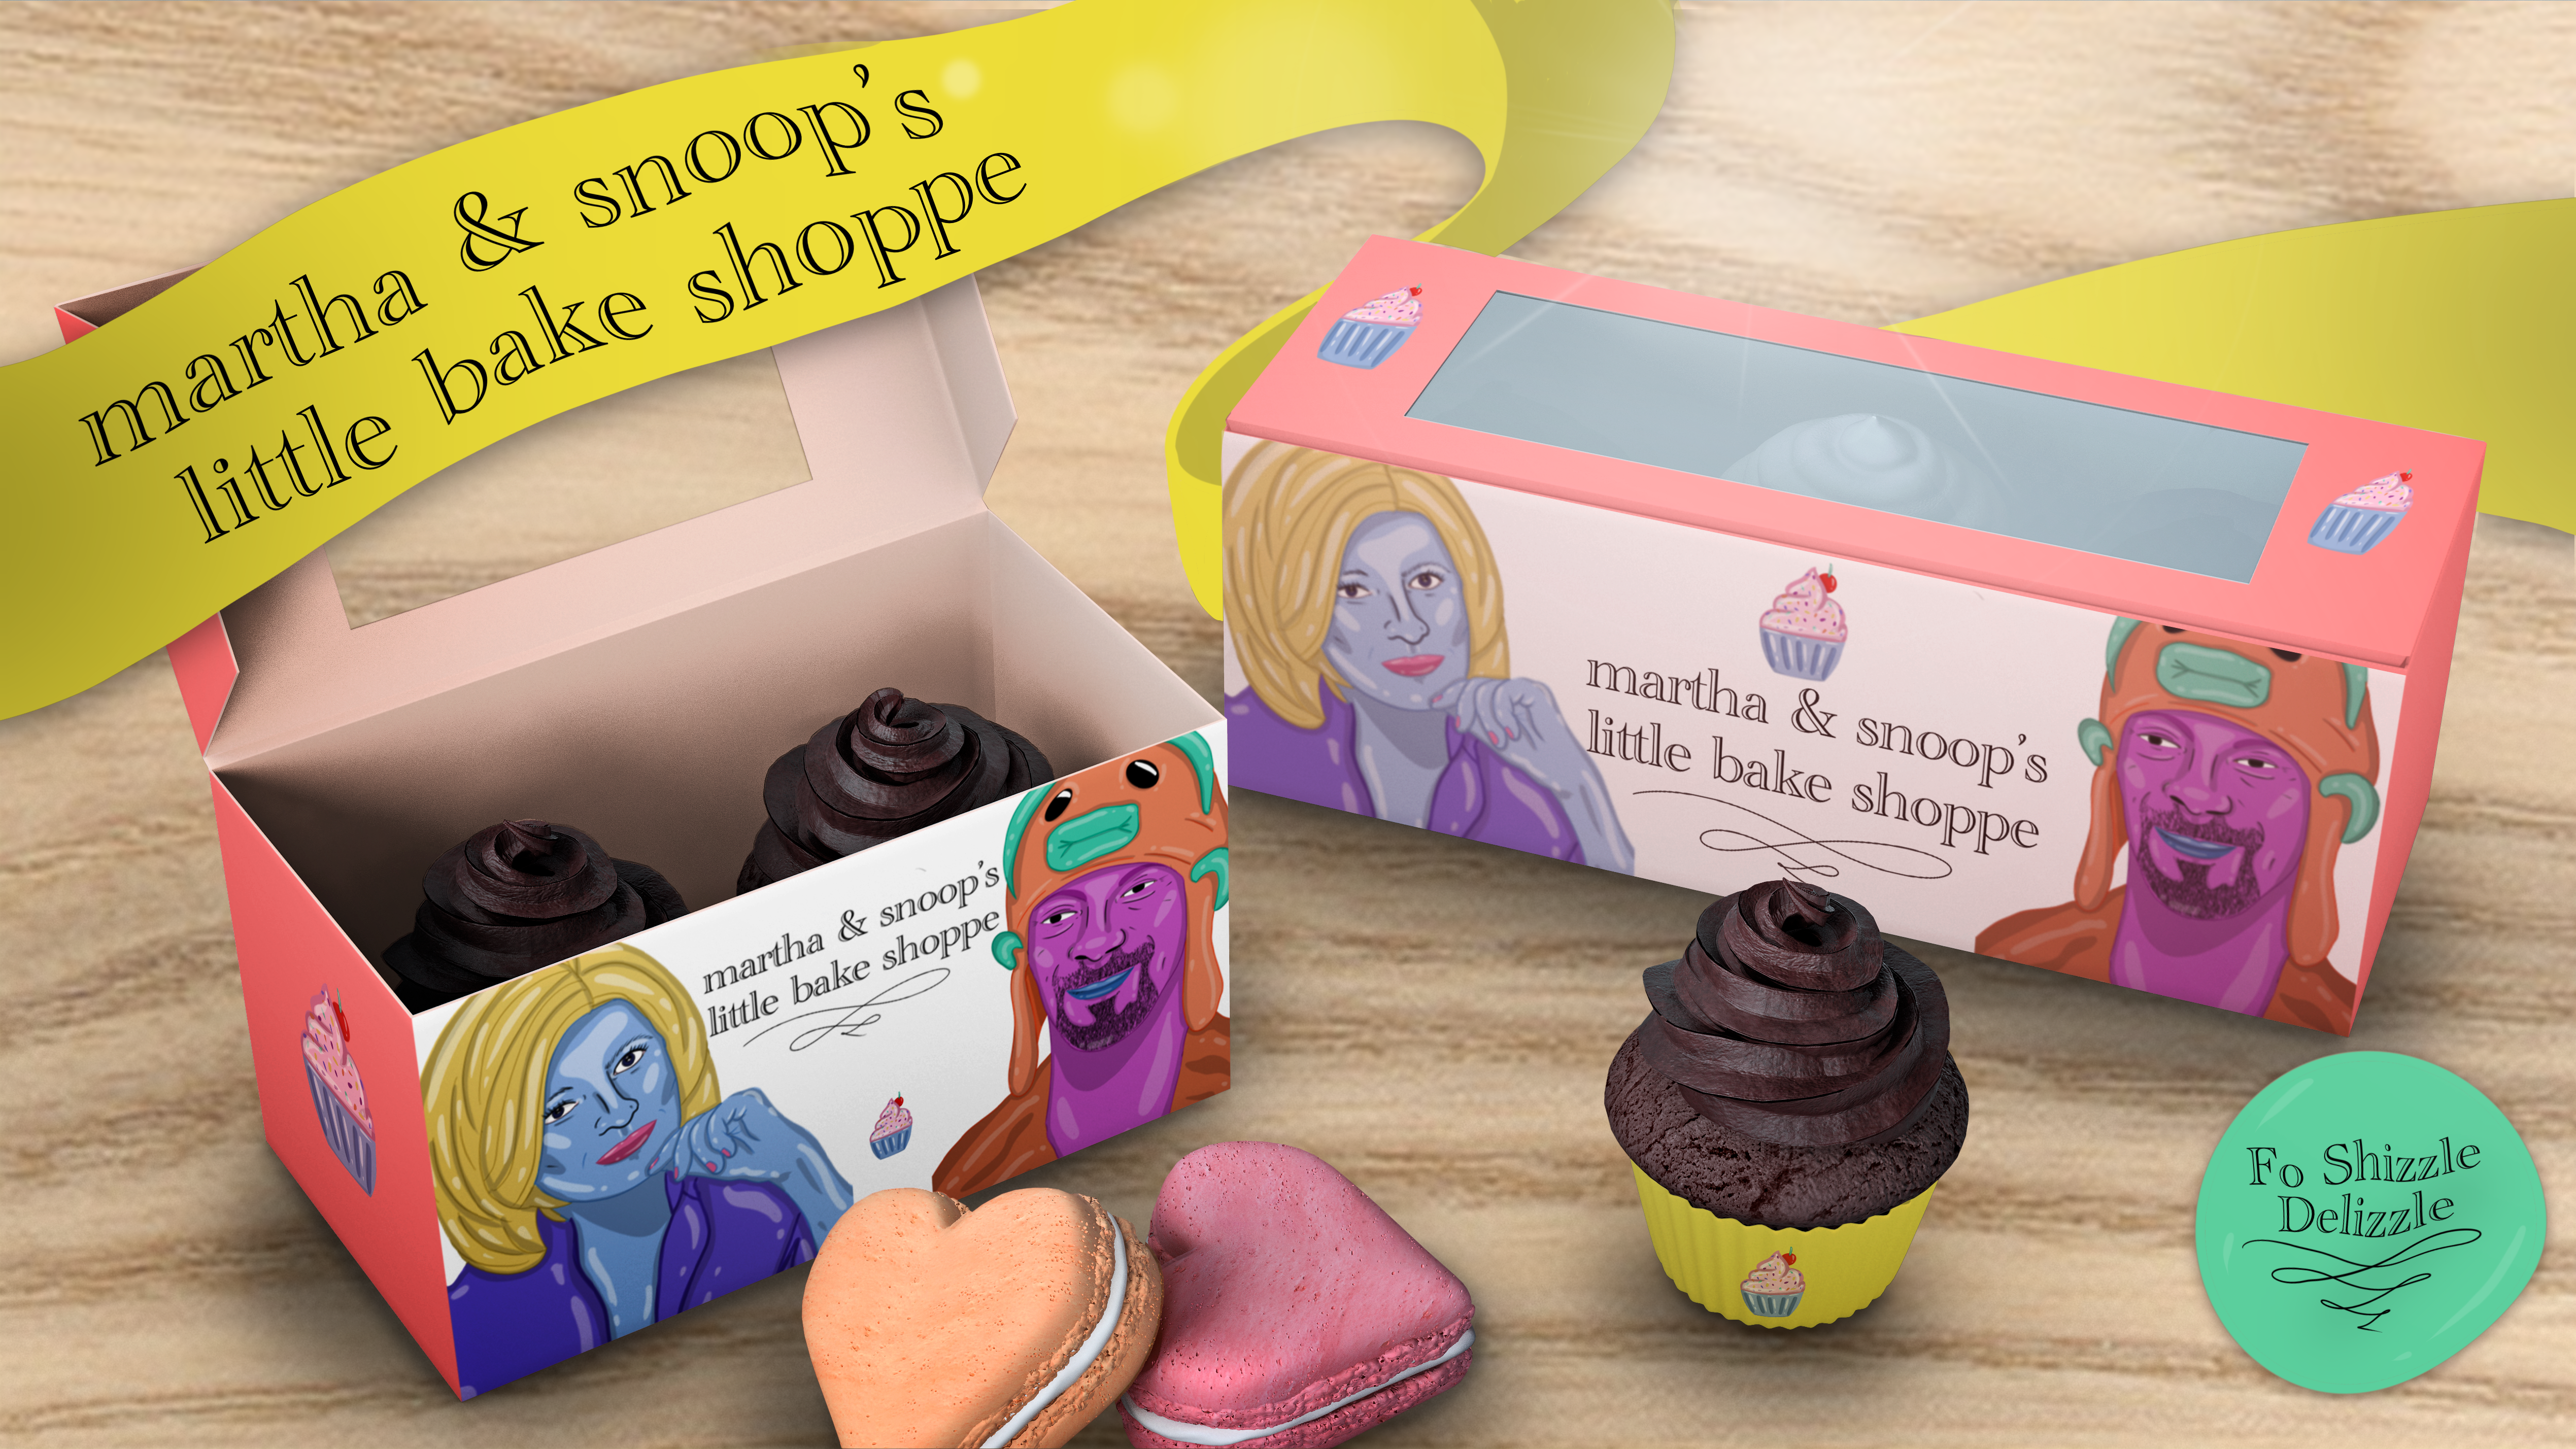 Martha & Snoop's Bake Shoppe